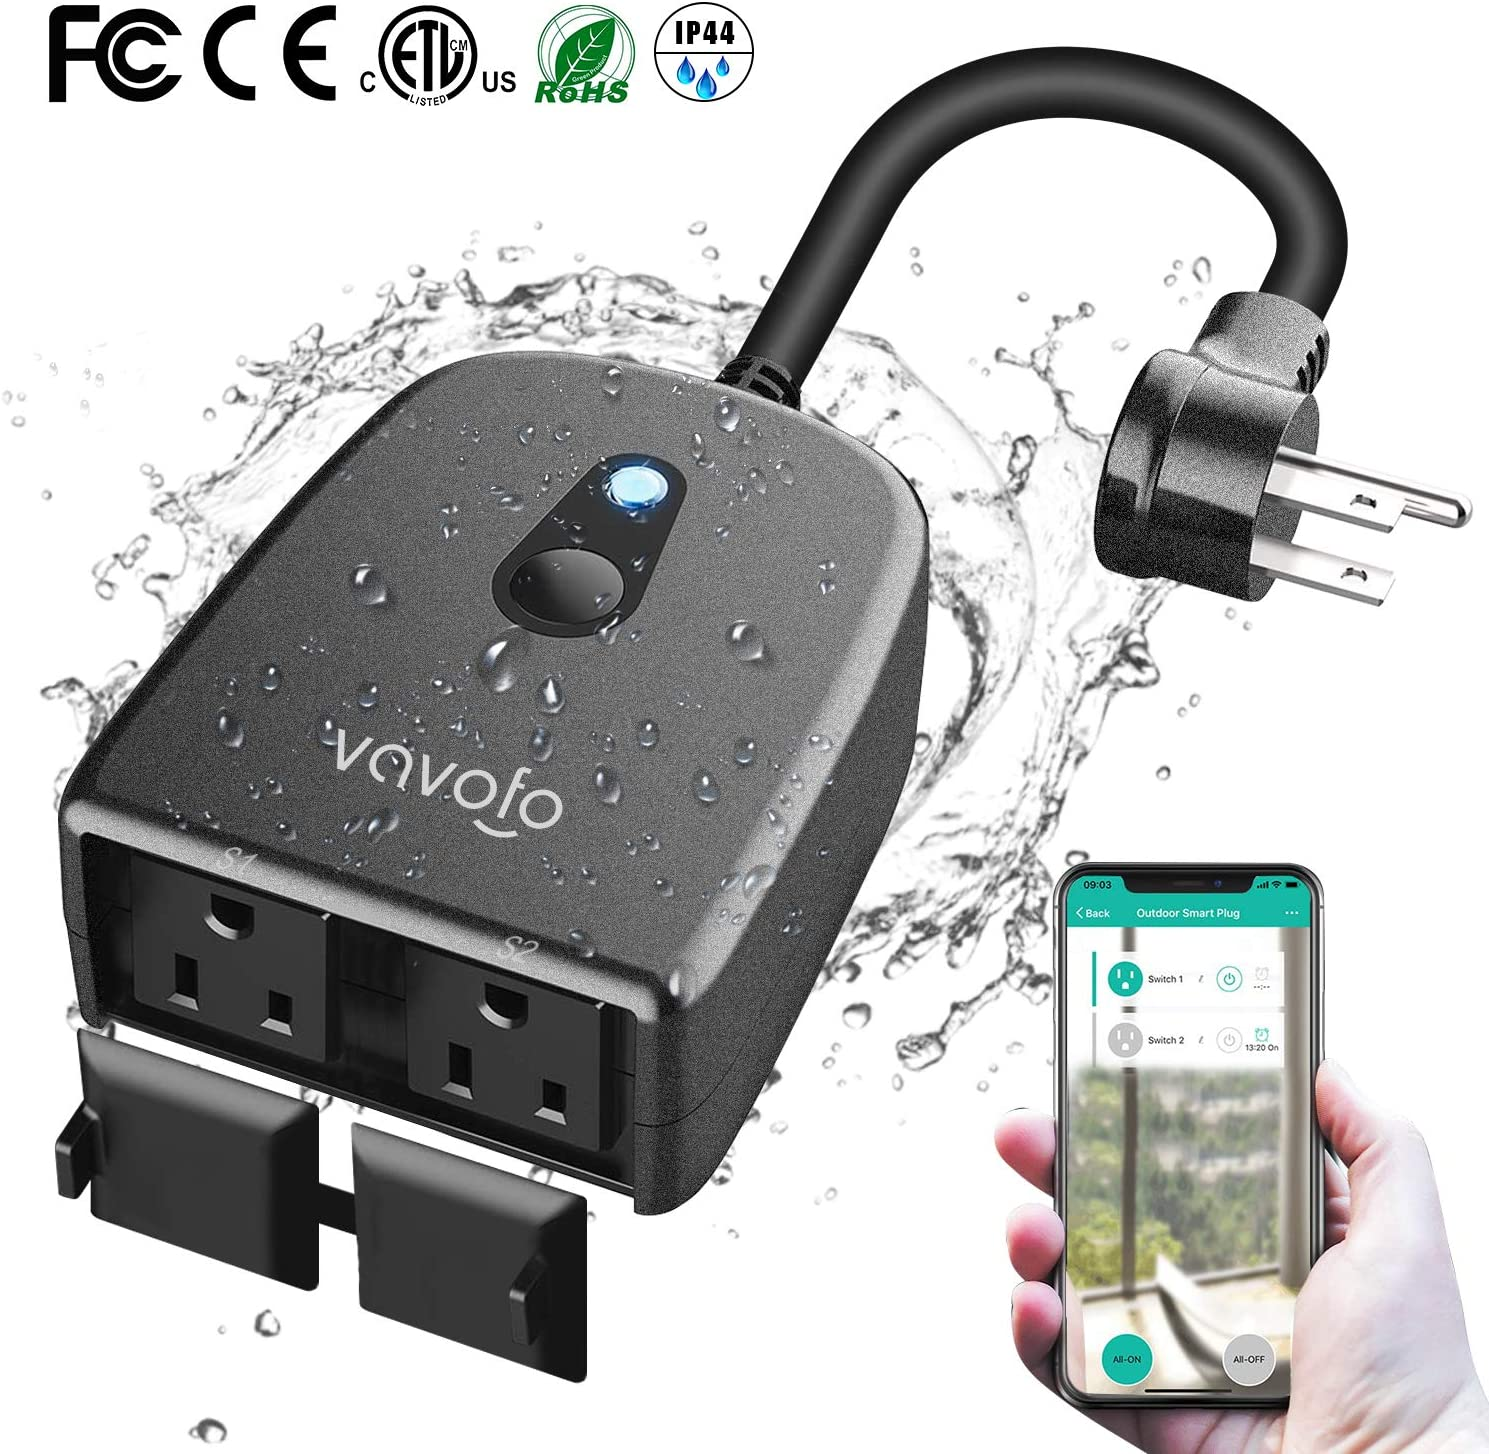 Voice Smart Wifi Plug Outdoor Compatible With Alexa Google Home IP44 Level Water